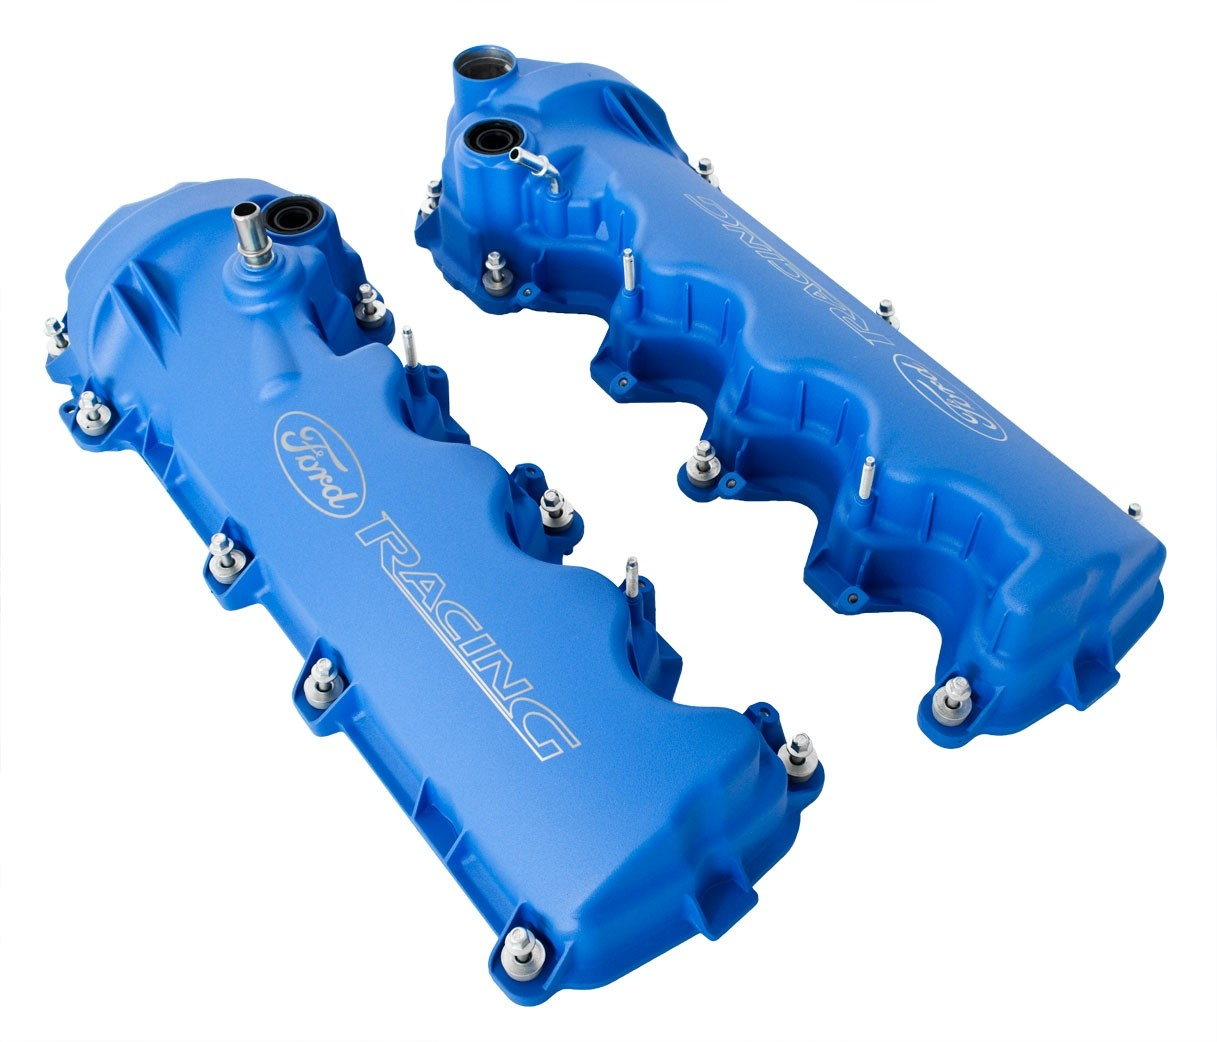 Ford Racing M-6582-FR3VBL Blue Powder Coated 3-Valve Camshaft Cover with Logo for 4.6L Engine